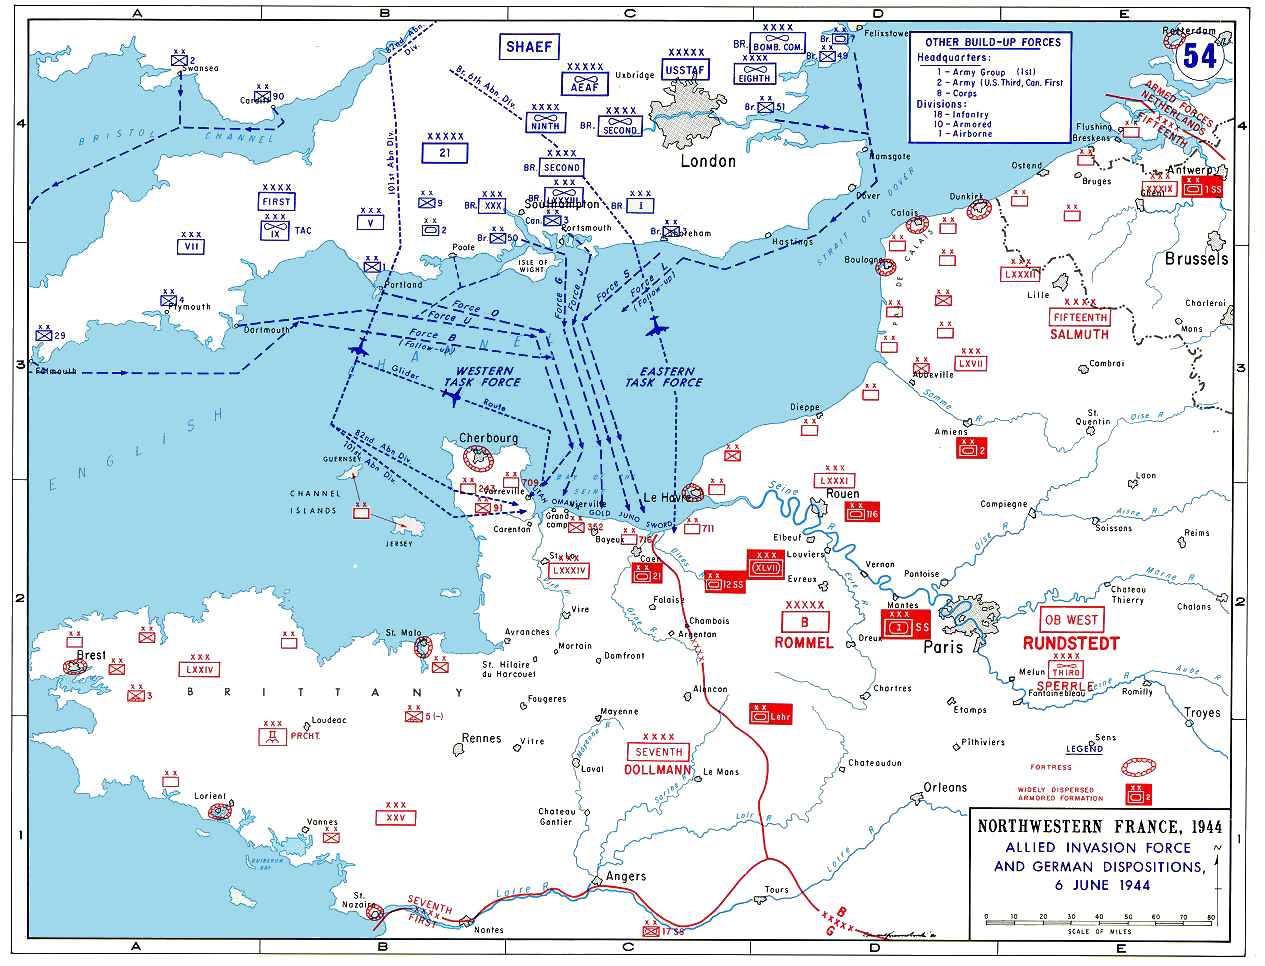 Map showing the disposition of forces during D-Day